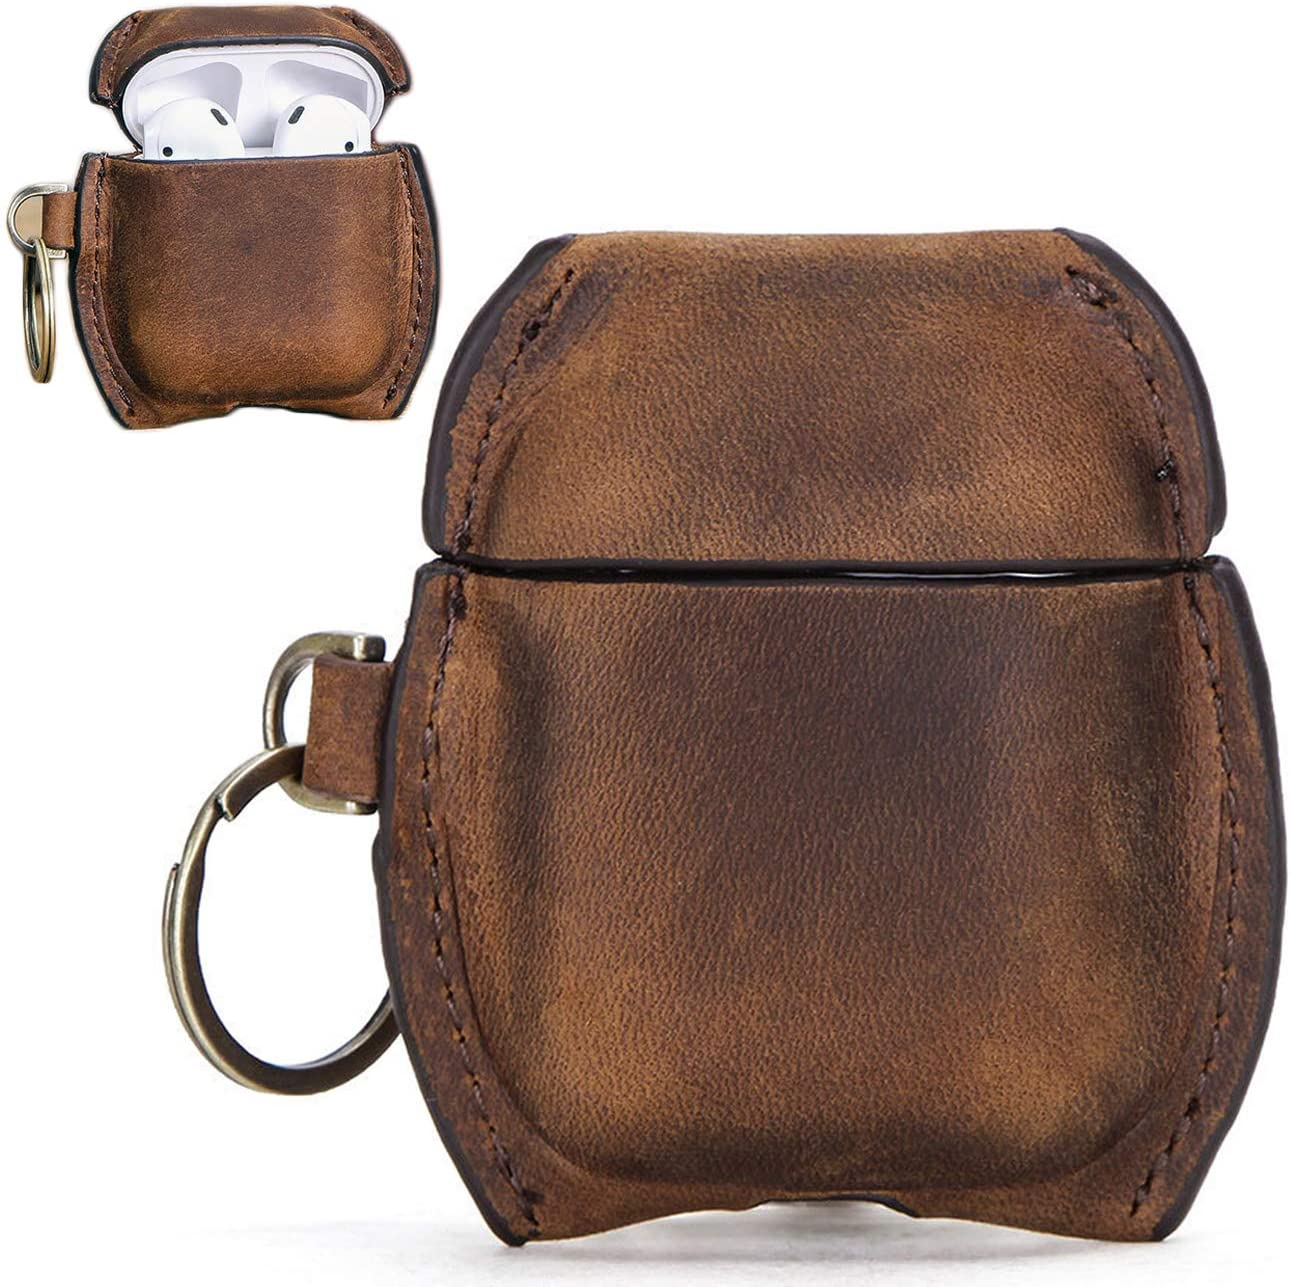 Personalized AirPods Leather Case with Keychain, Snap Closure Genuine Leather Case Shockproof Cover for Apple AirPods 1 Case & Airpods 2 Case Universal Leather Airpod Wireless Charging (Brown)